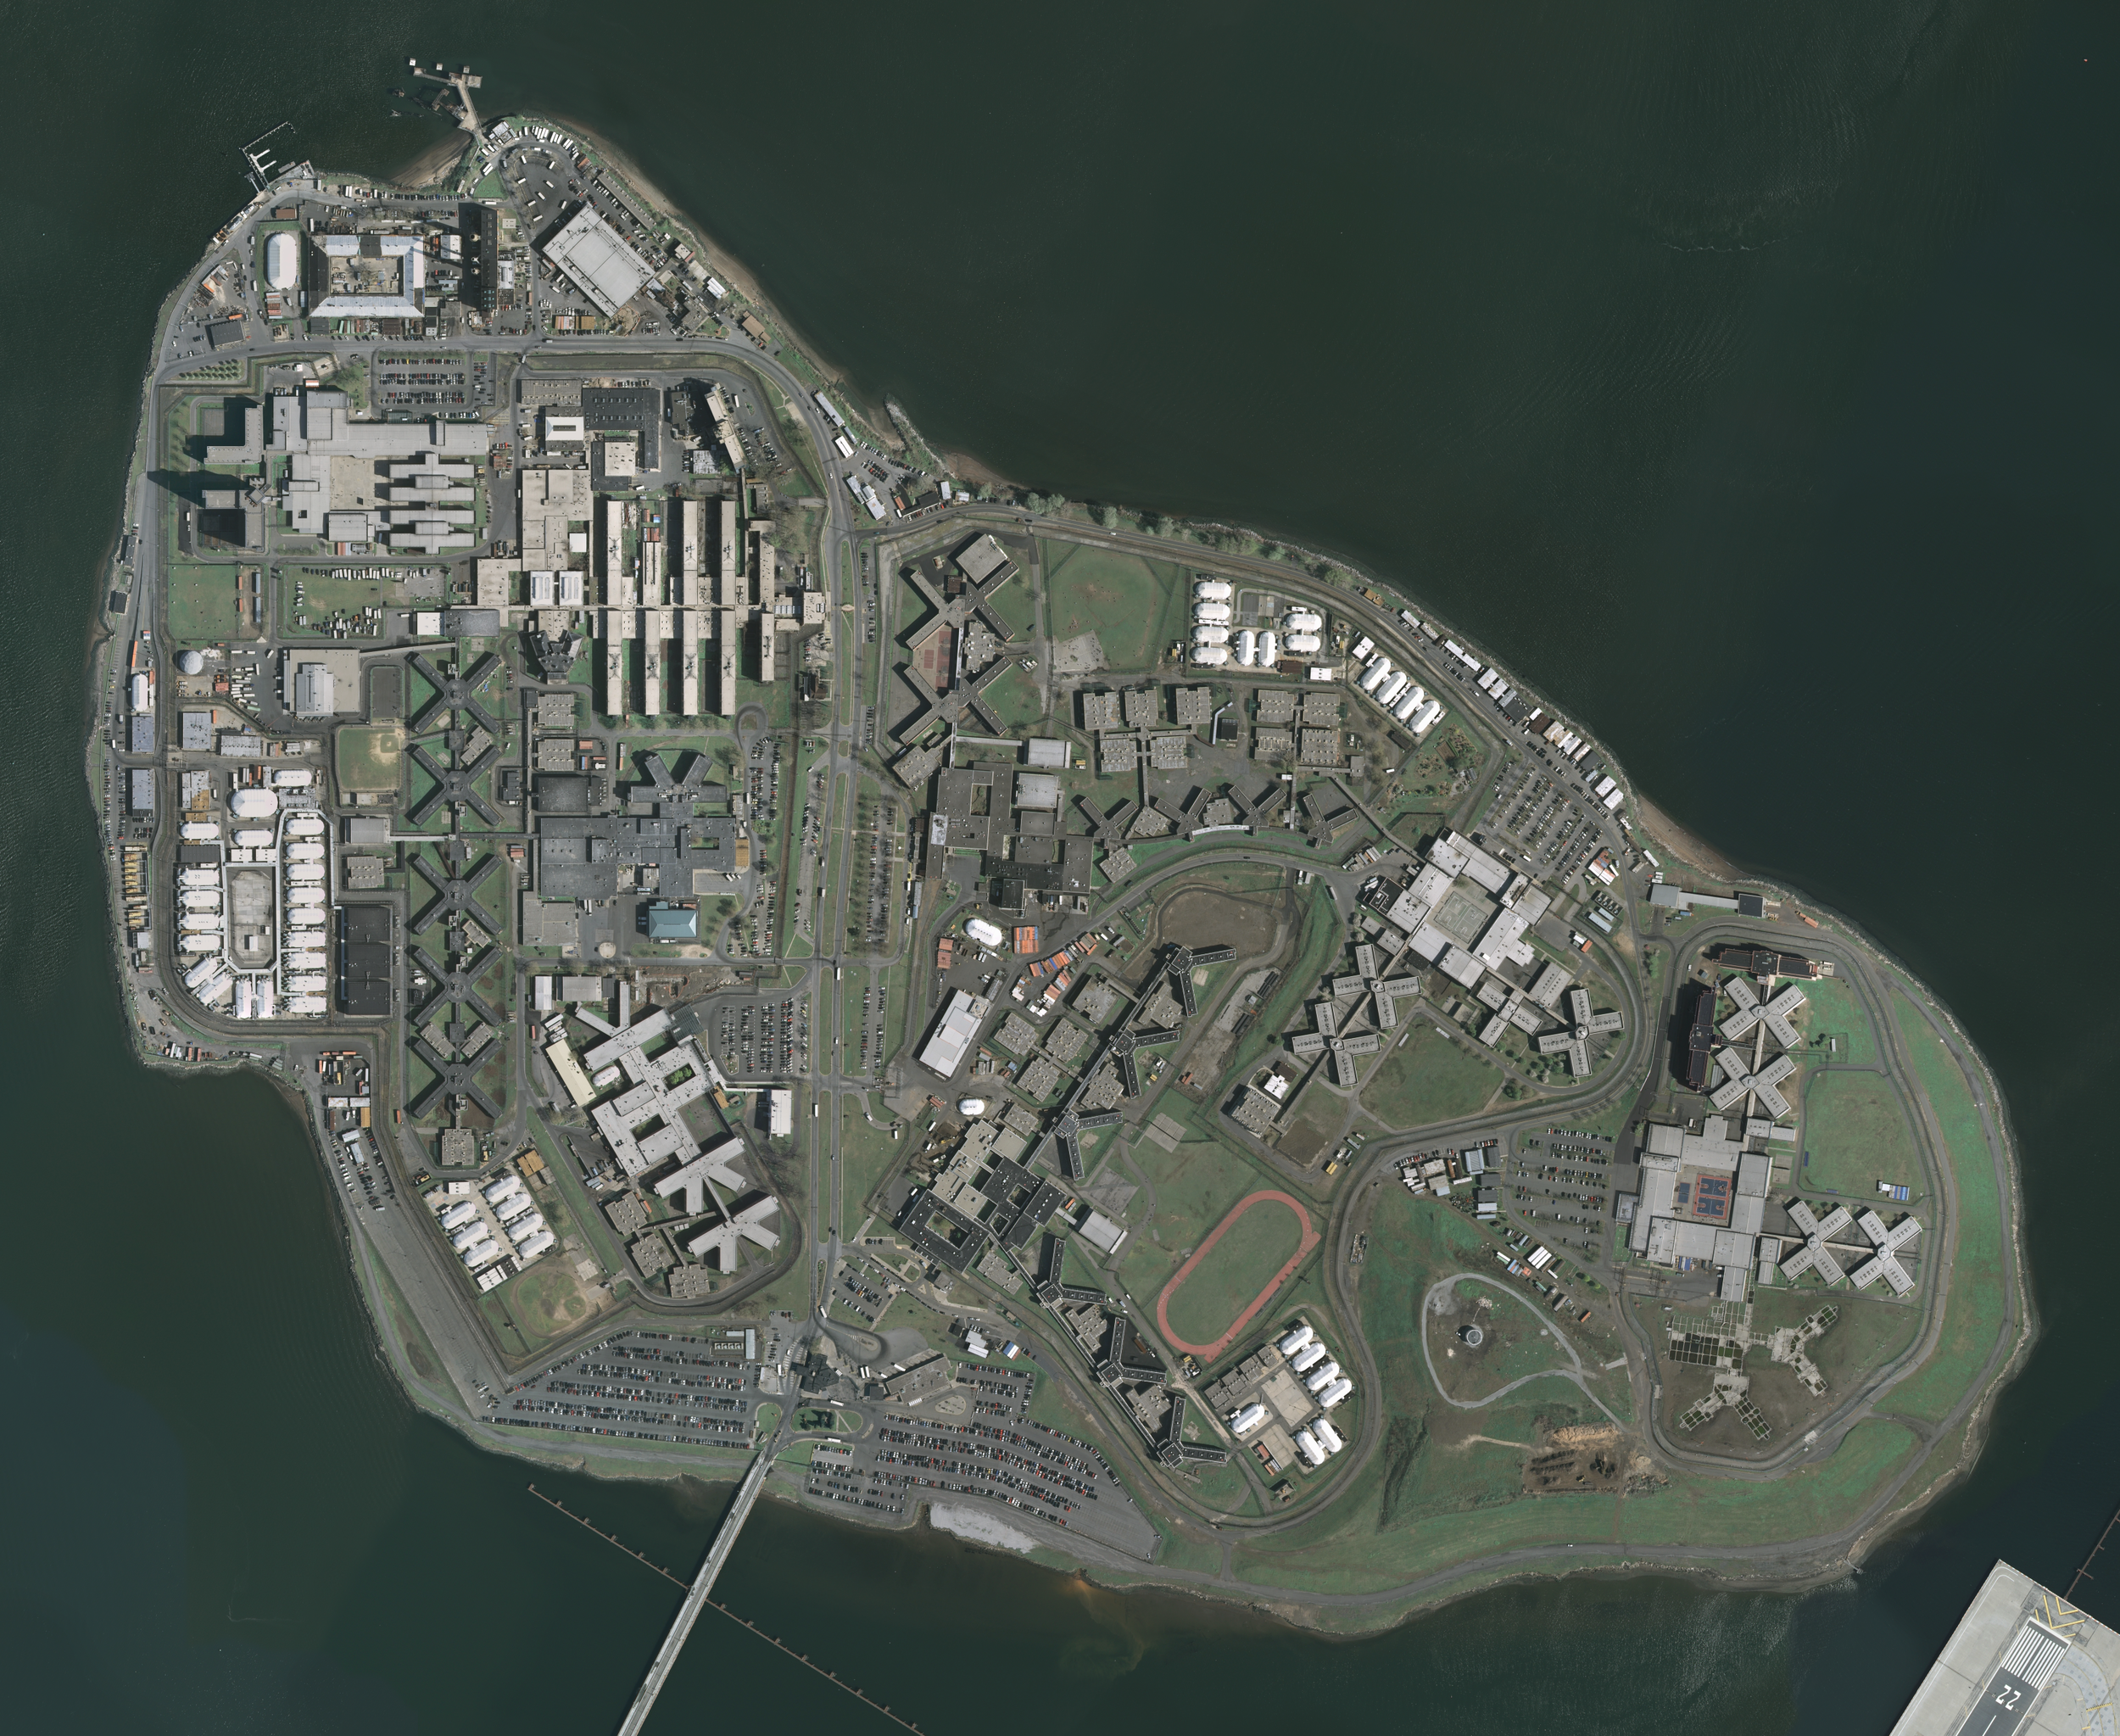 An aerial view of Rikers Island. Photo by the  U.S. Geological Survey  via Wikimedia Commons.